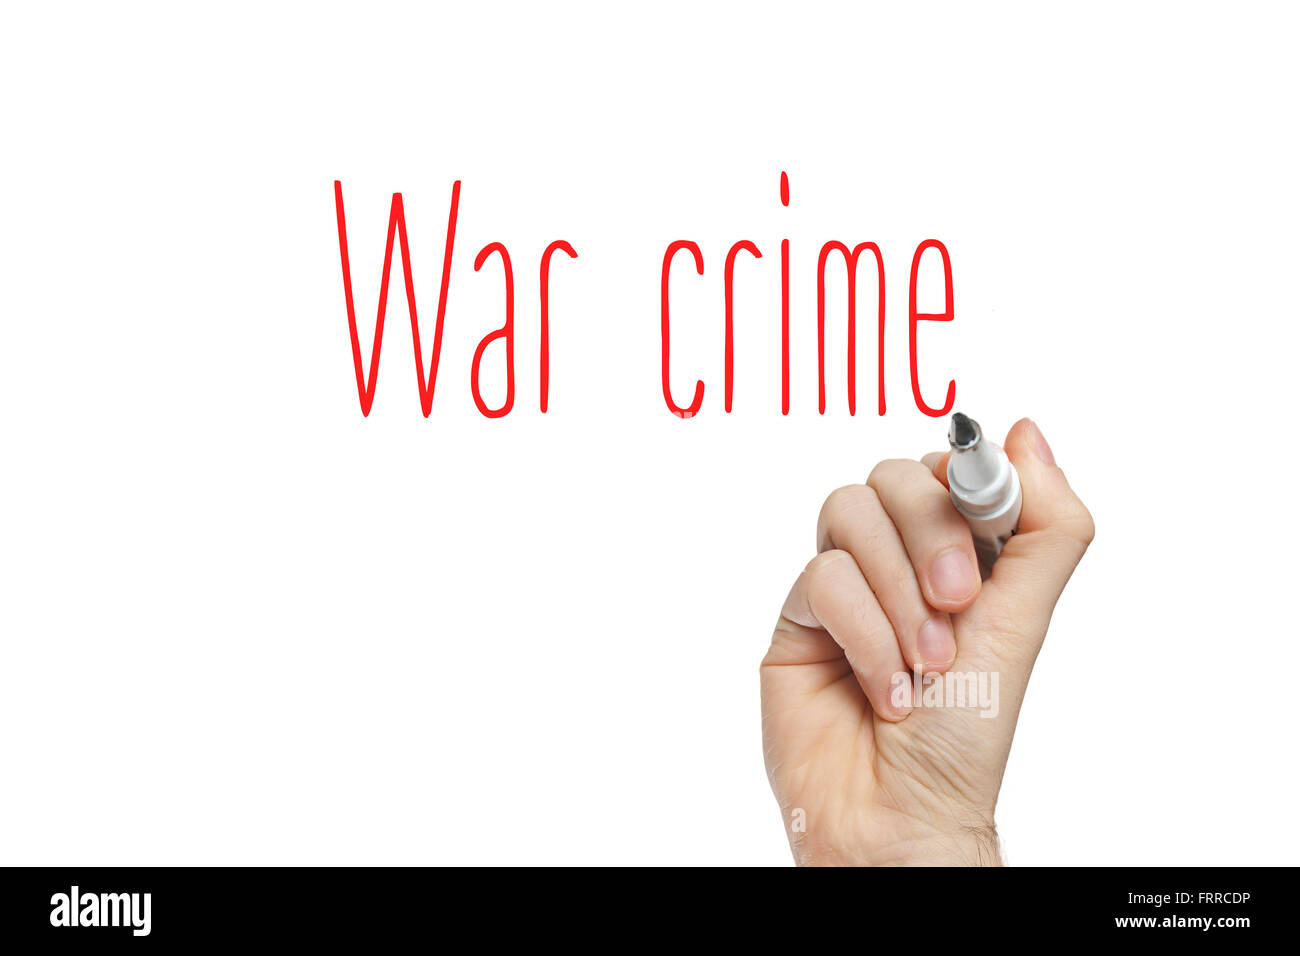 Hand writing war crime on a white board - Stock Image